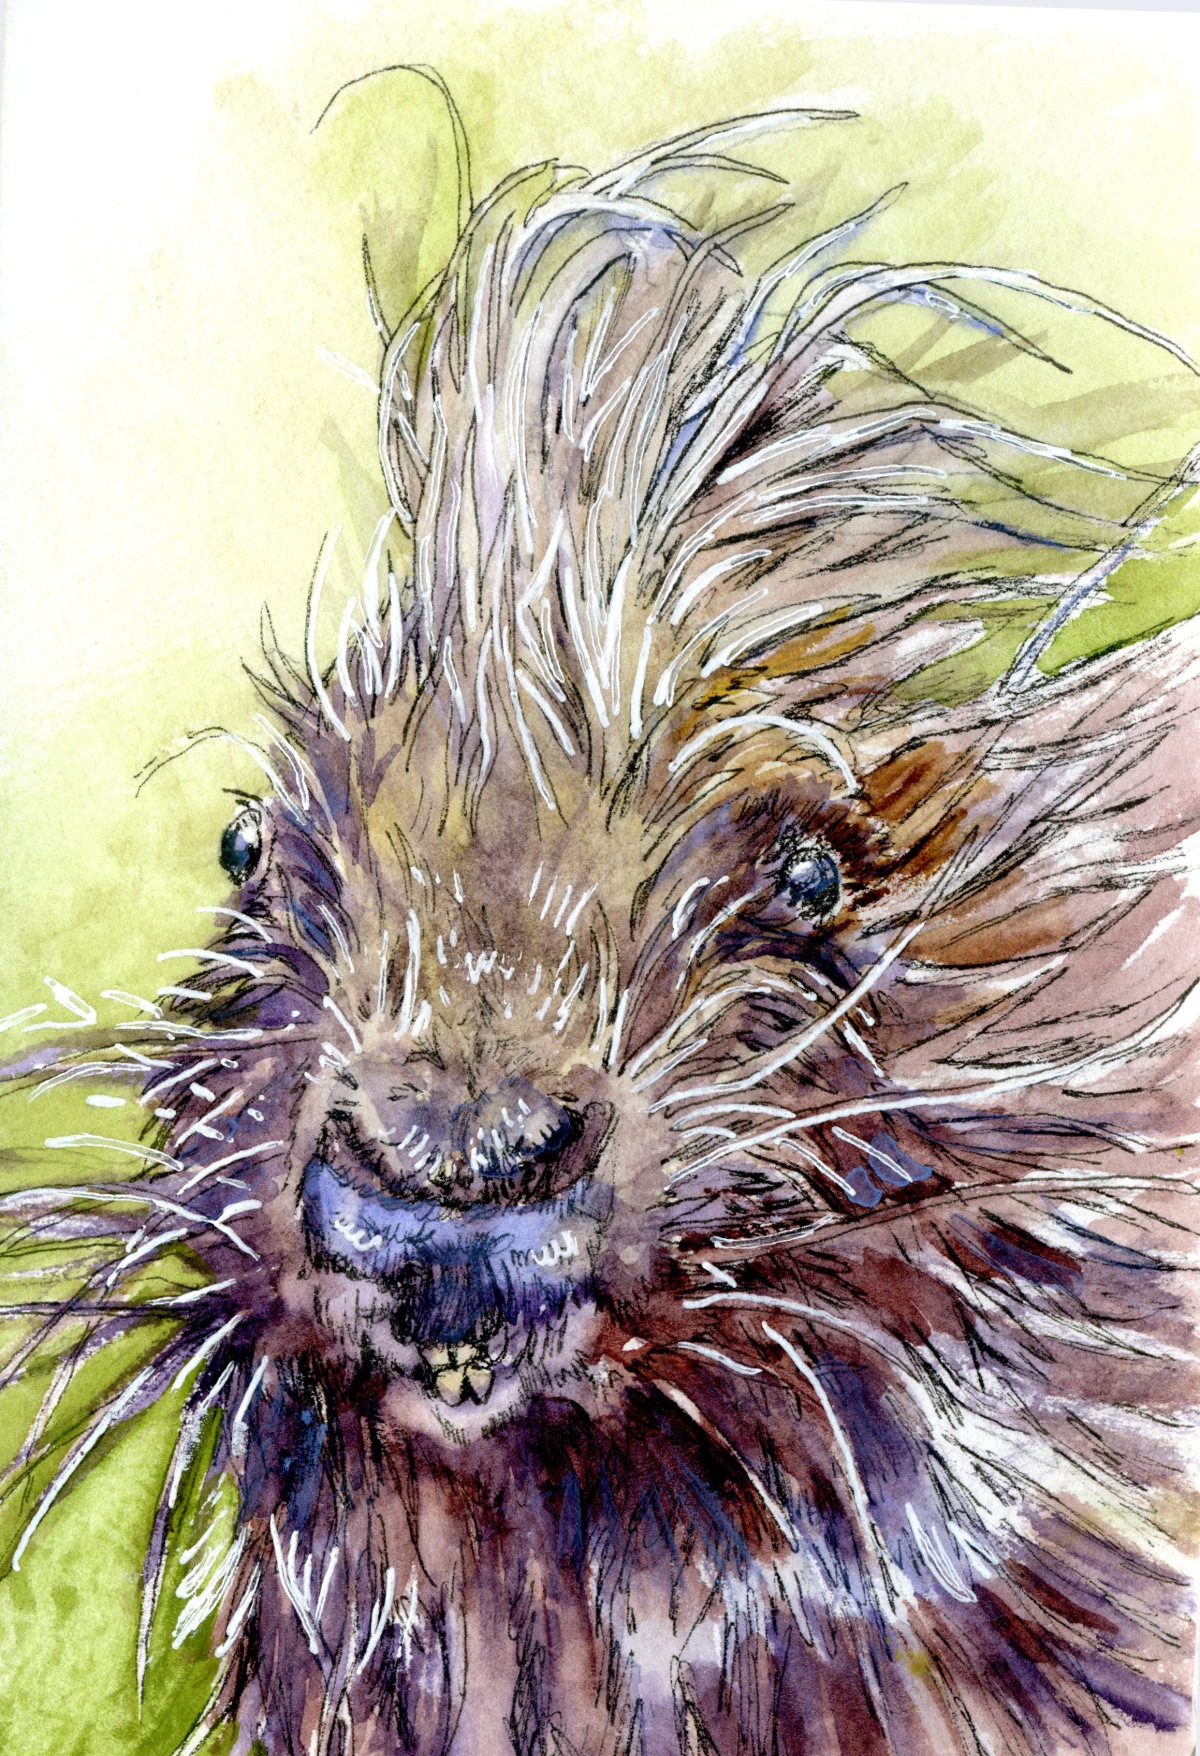 Porcupine – Postcards for the Lunch Bag